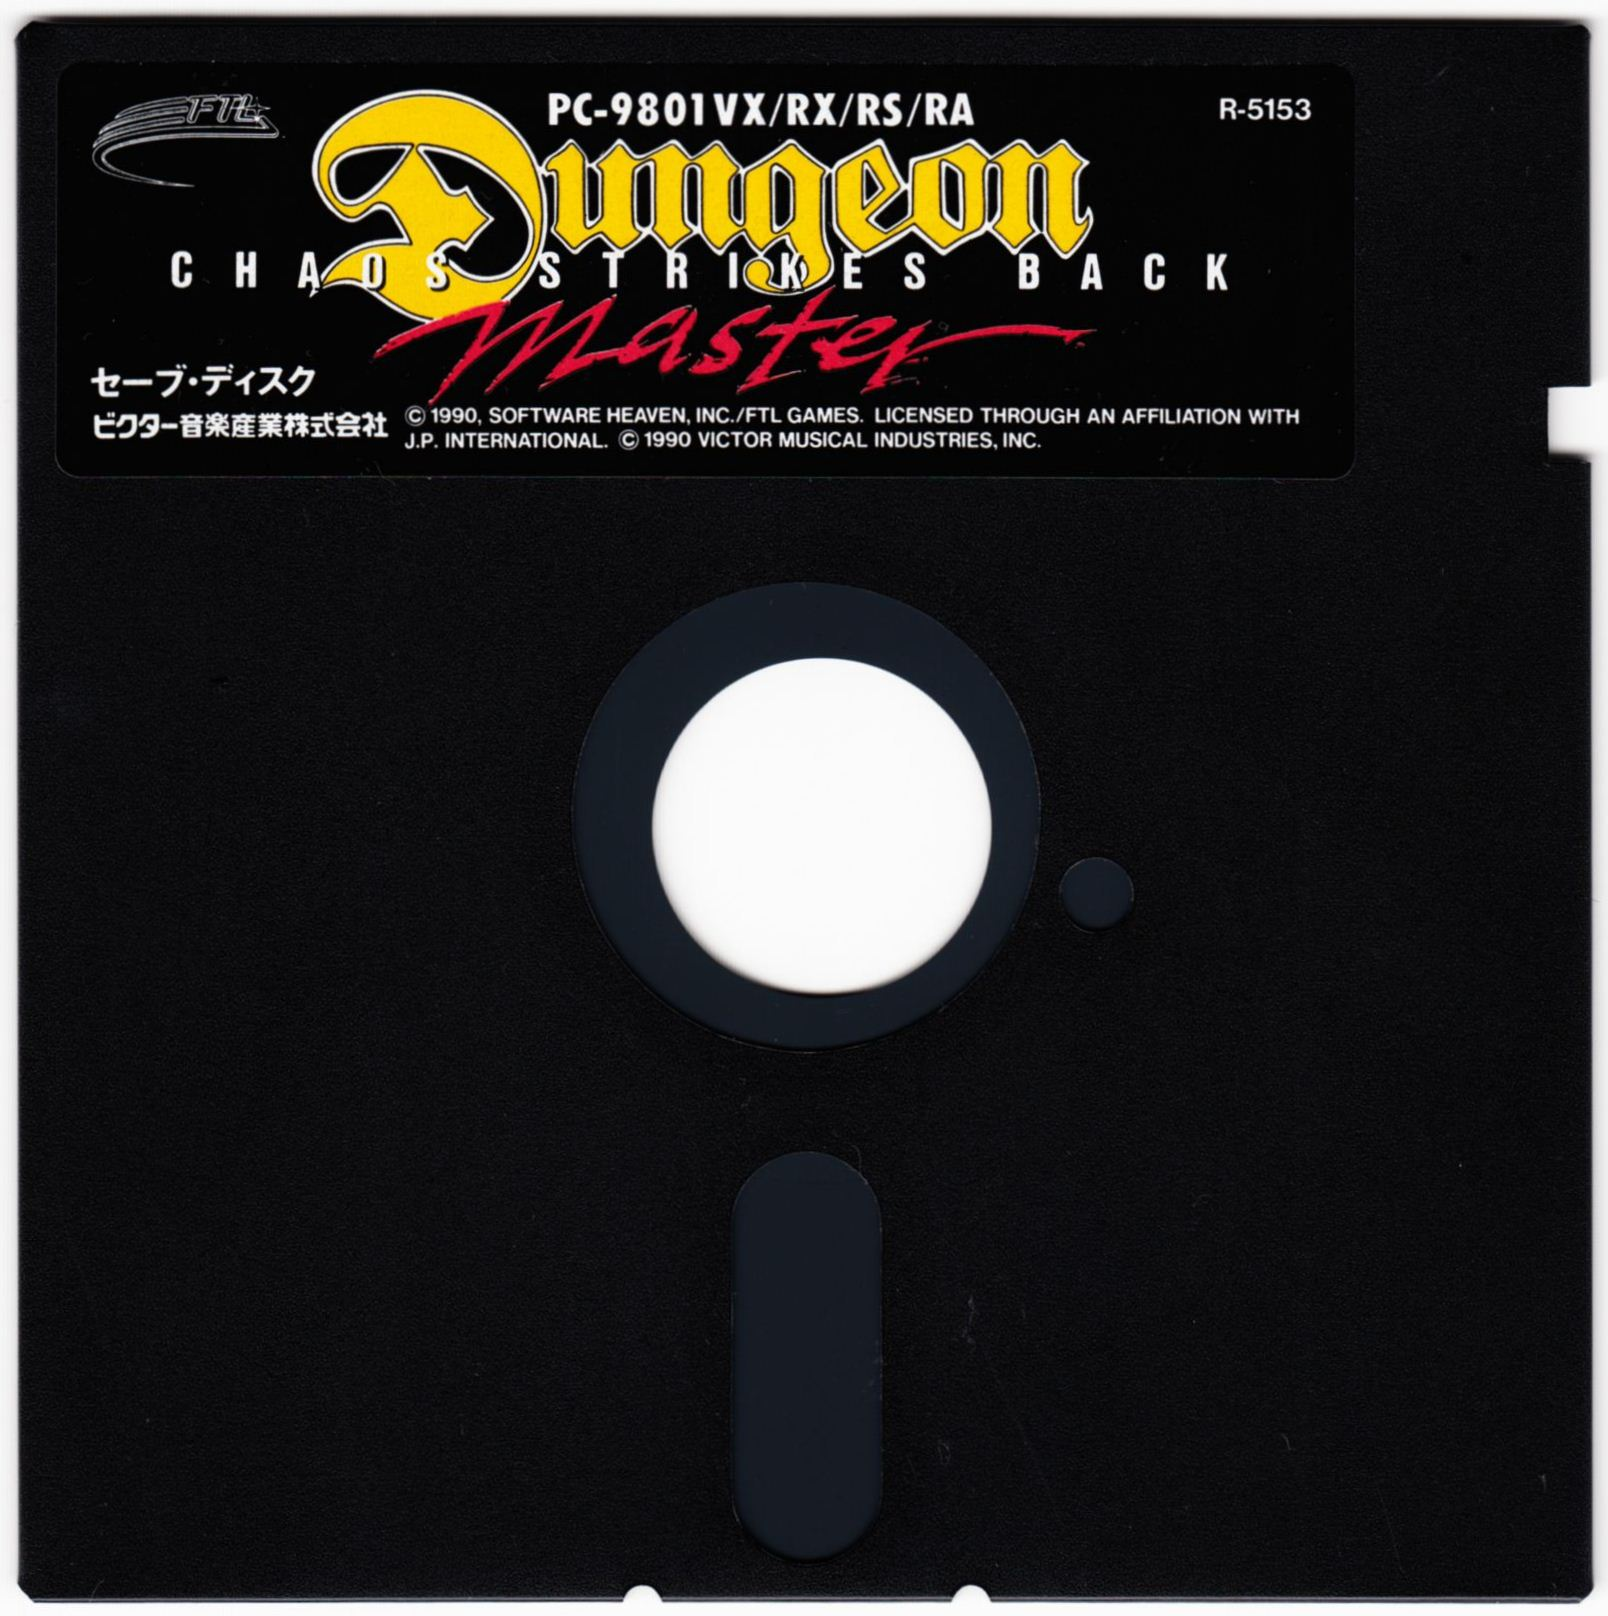 Game - Chaos Strikes Back - JP - PC-9801 - 5.25-inch - Save Disk - Front - Scan